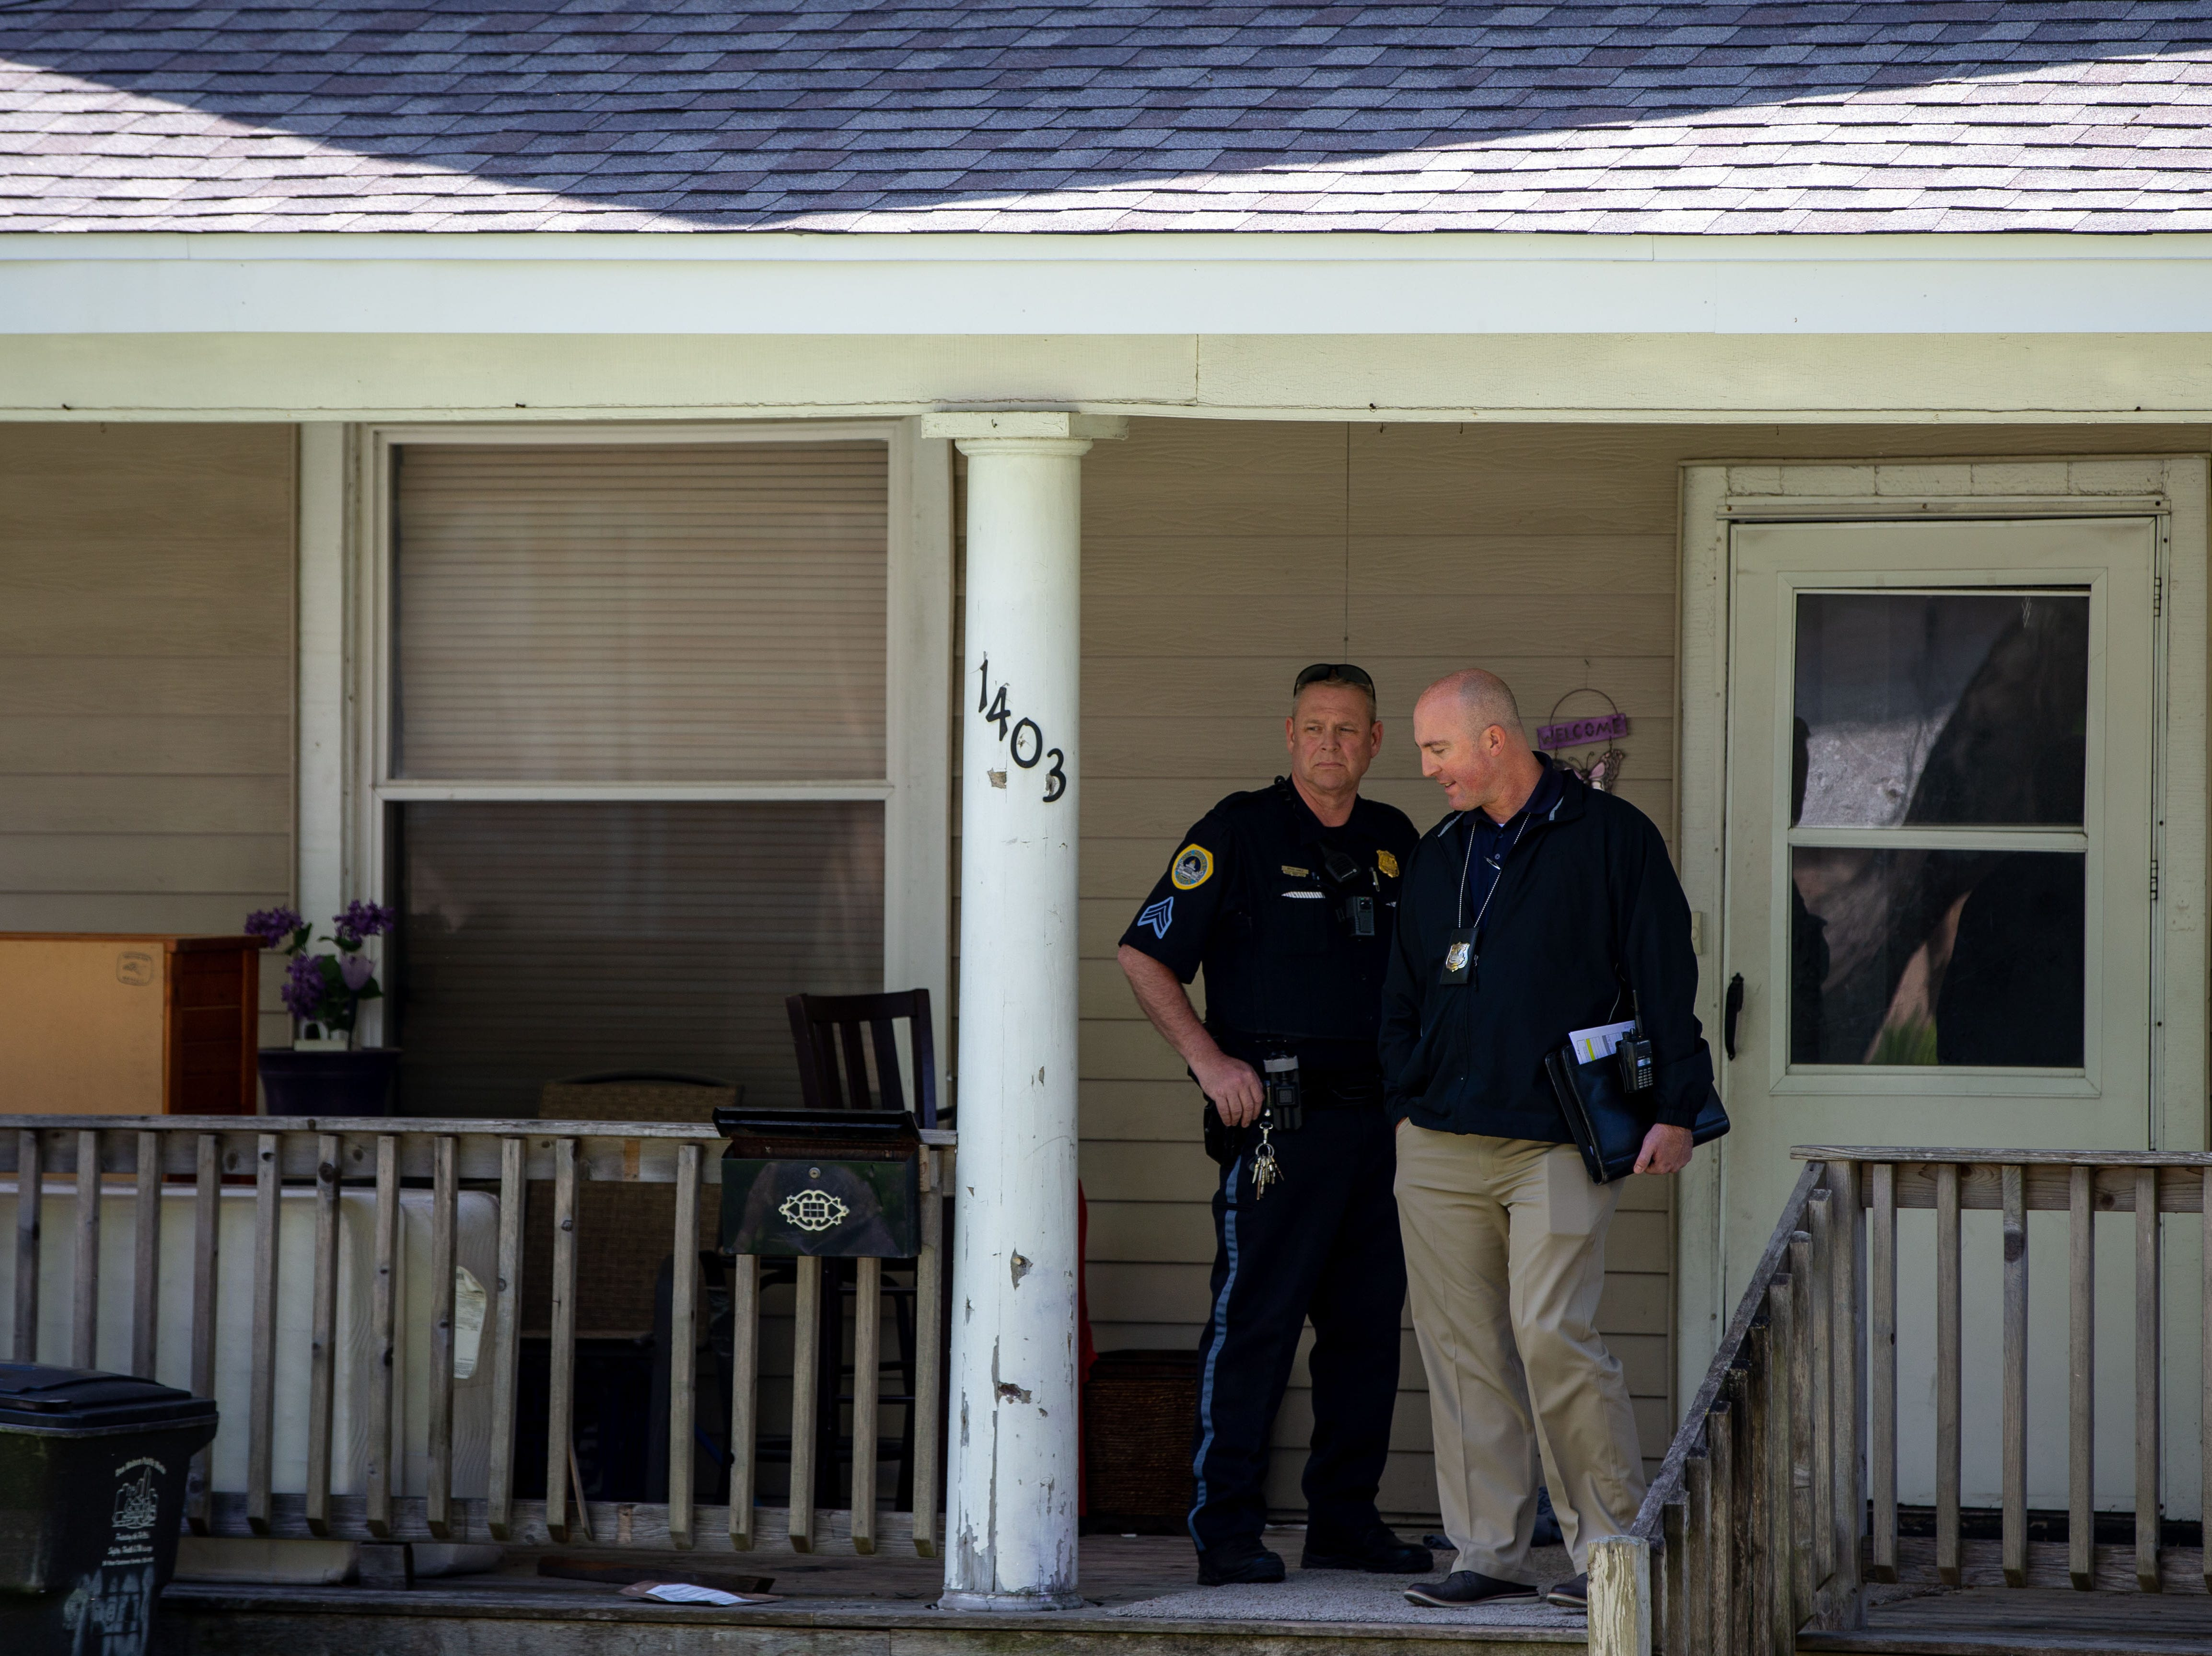 Police respond to a reported shooting at 1403 Dean Ave. in Des Moines Monday, May 13, 2019.